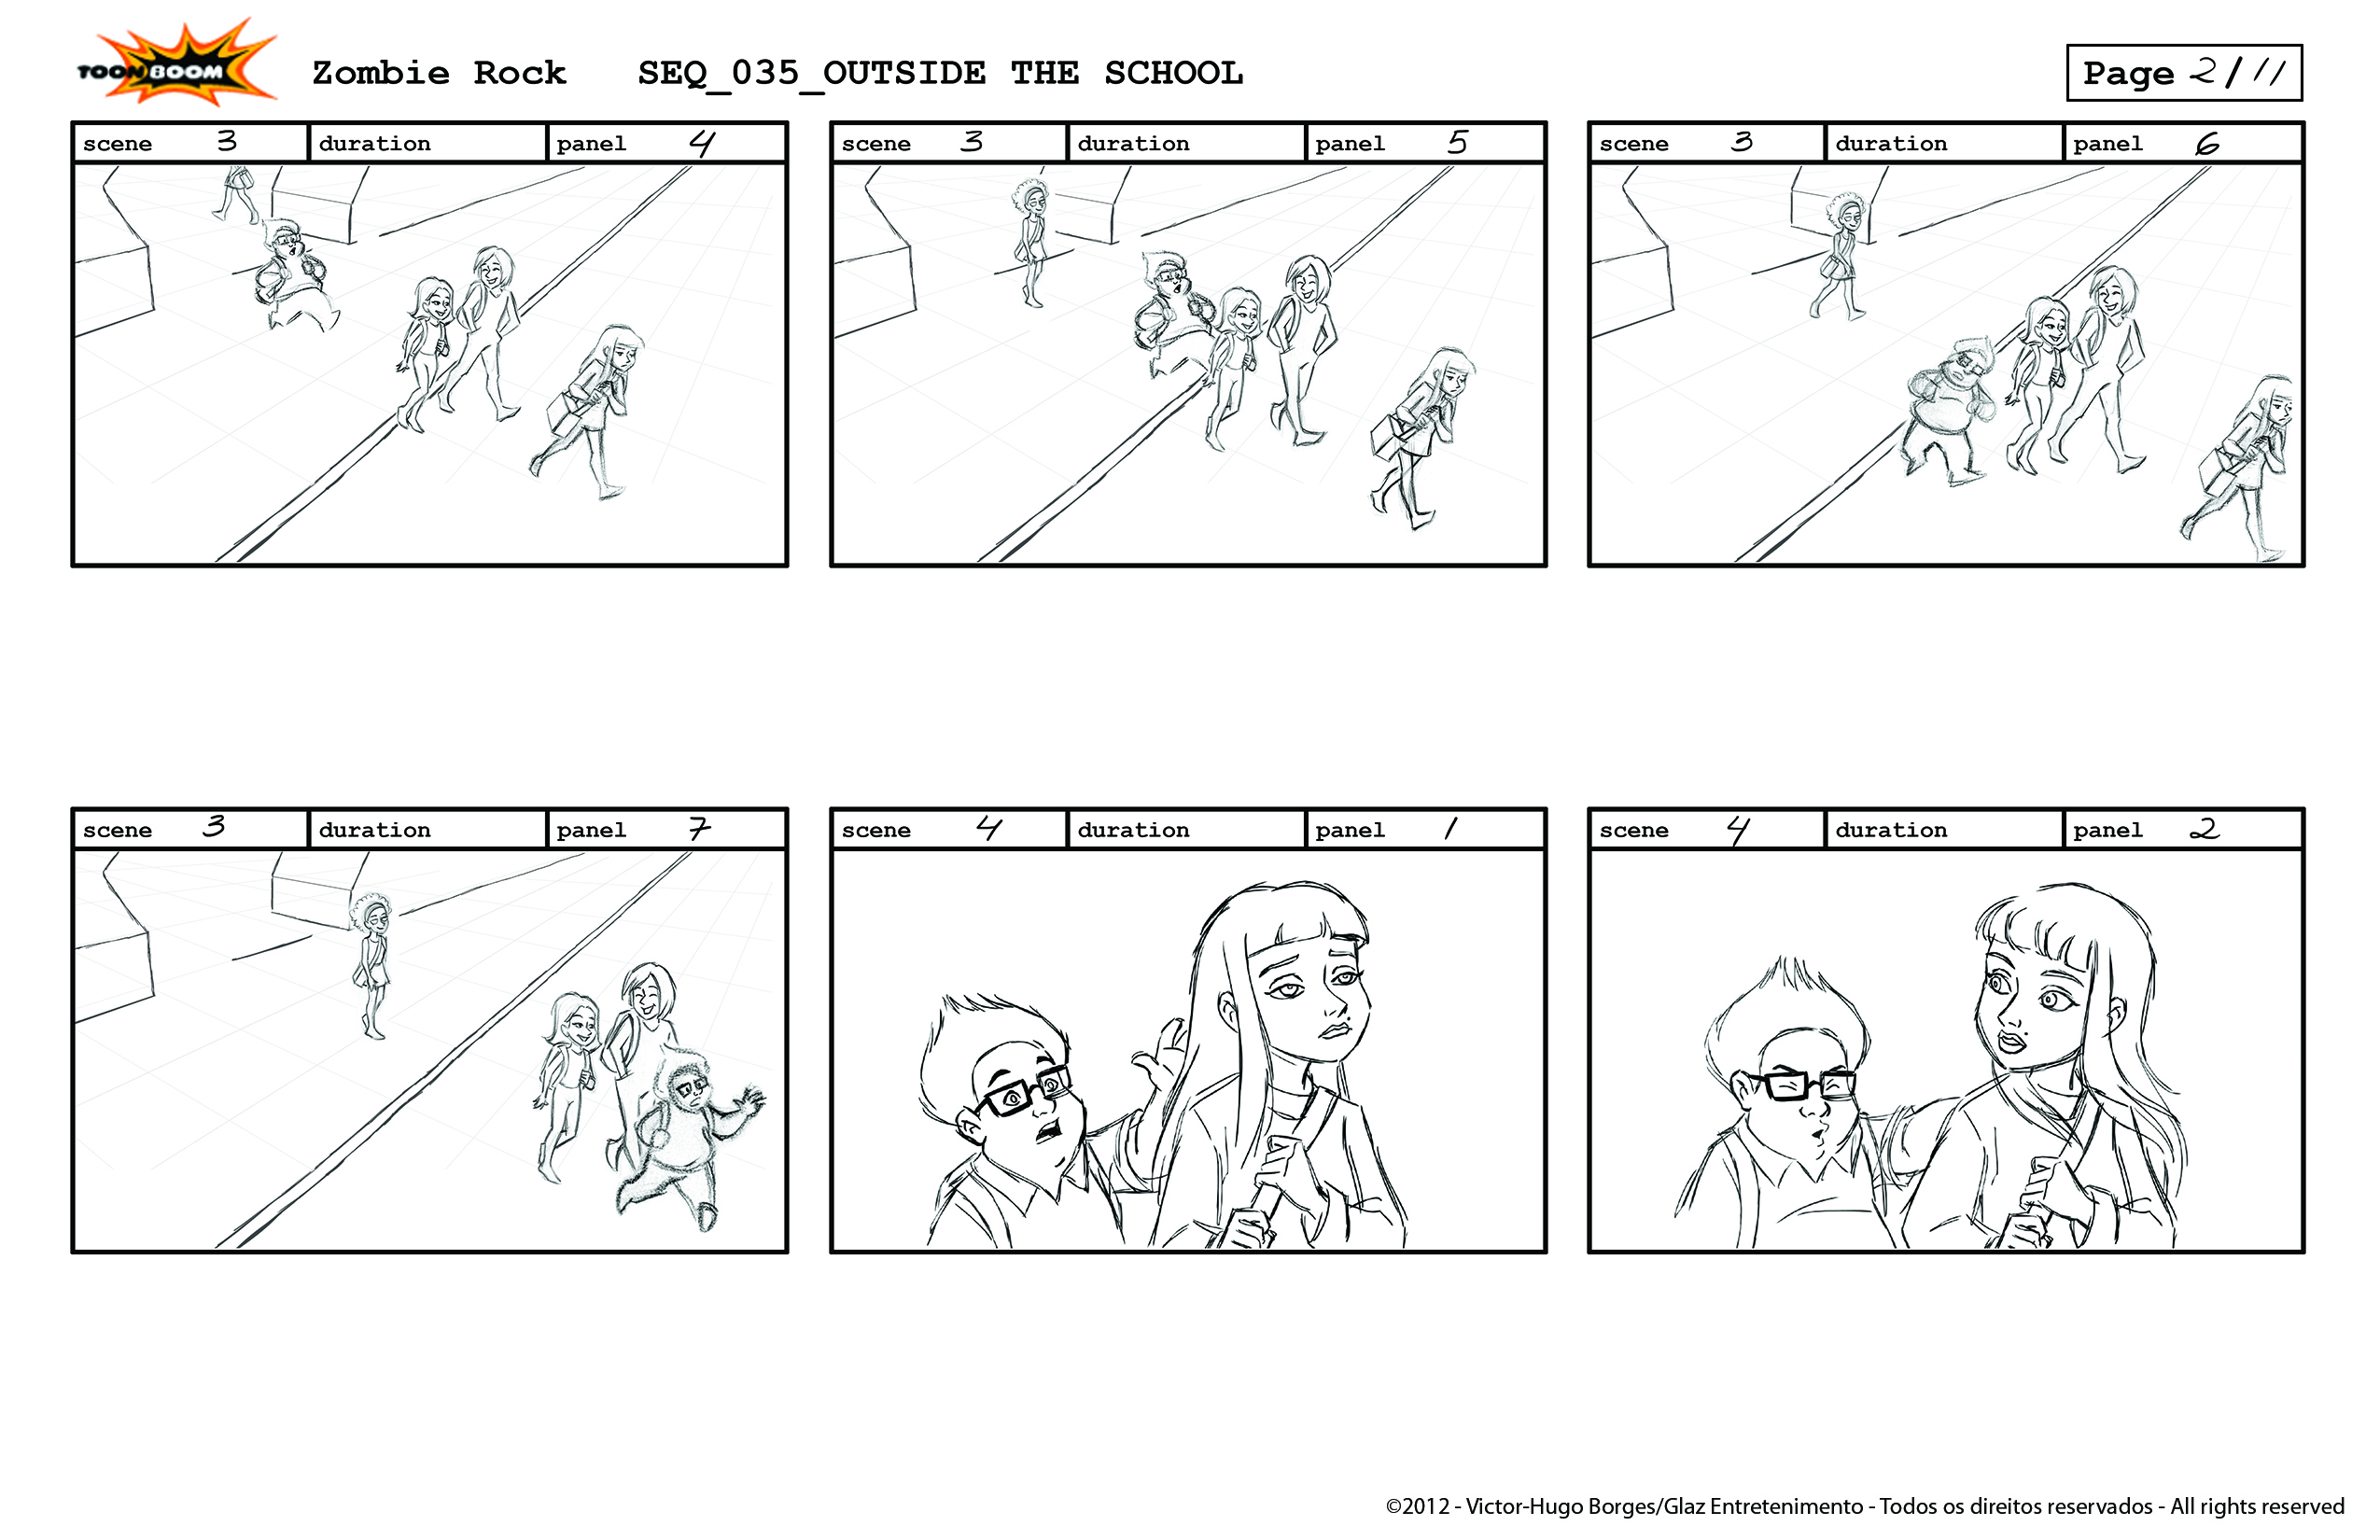 SEQ035_Outside the School_page02